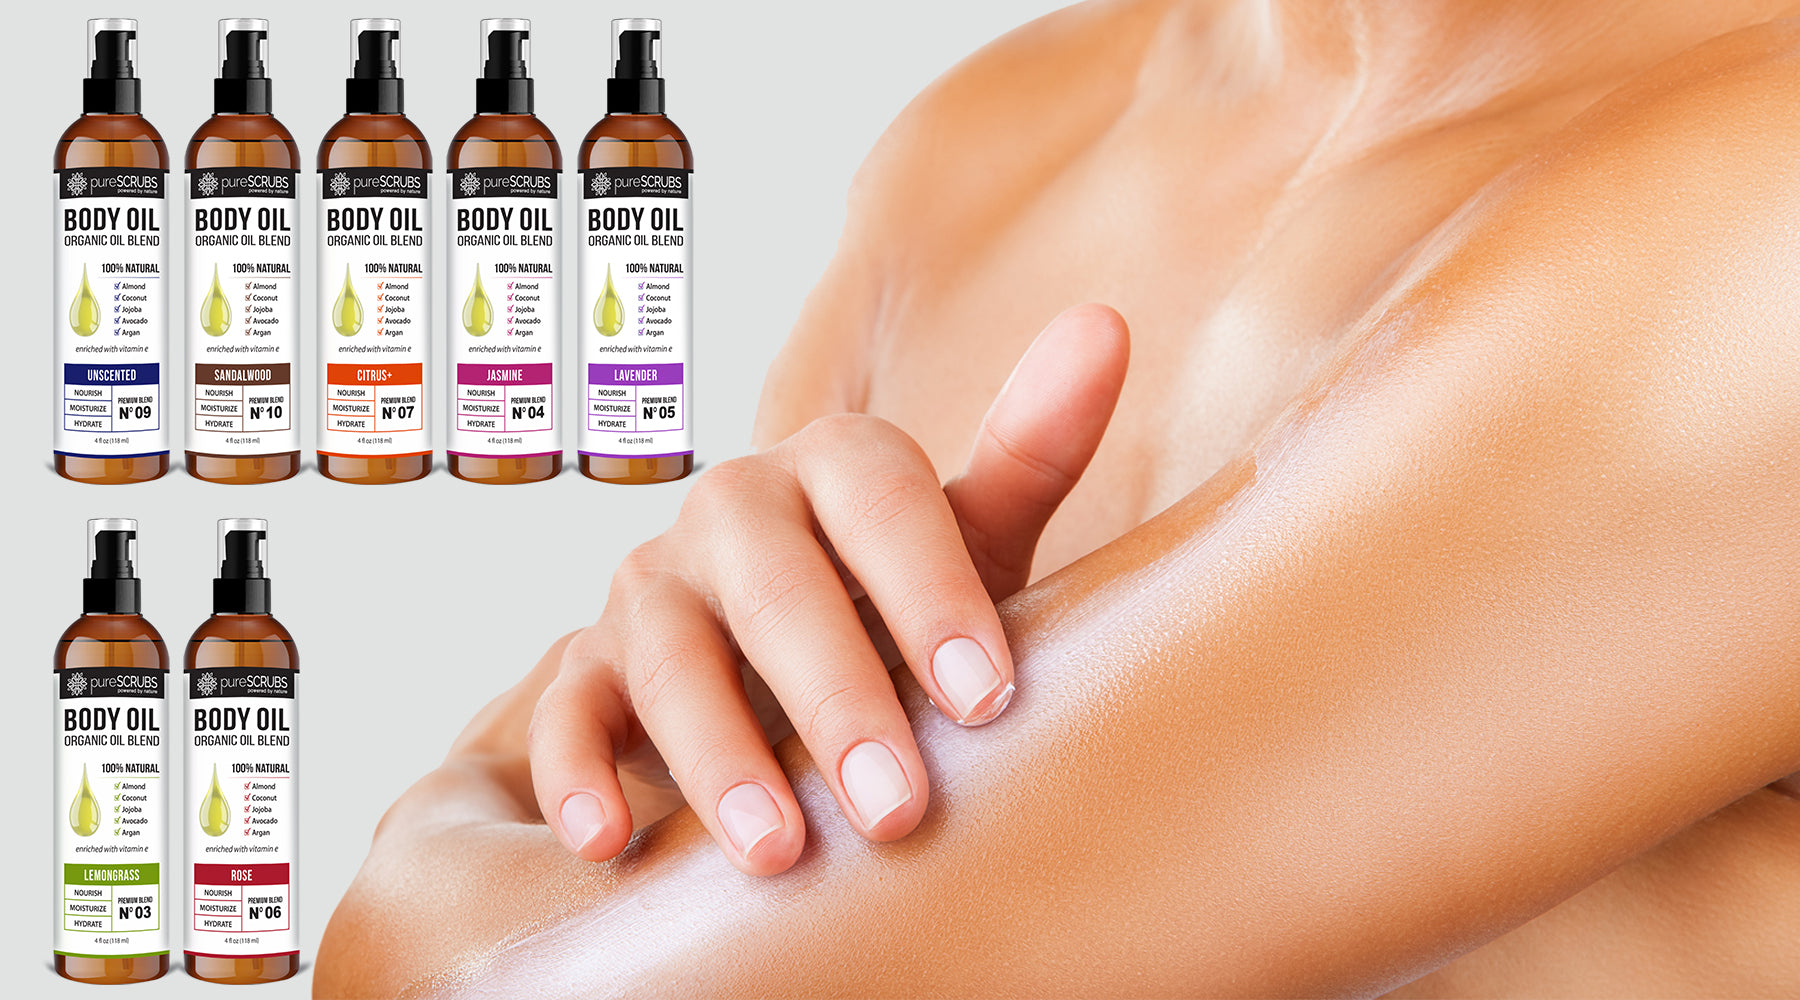 Using pureSCRUBS Body Oils - Detailed Tips & FAQs